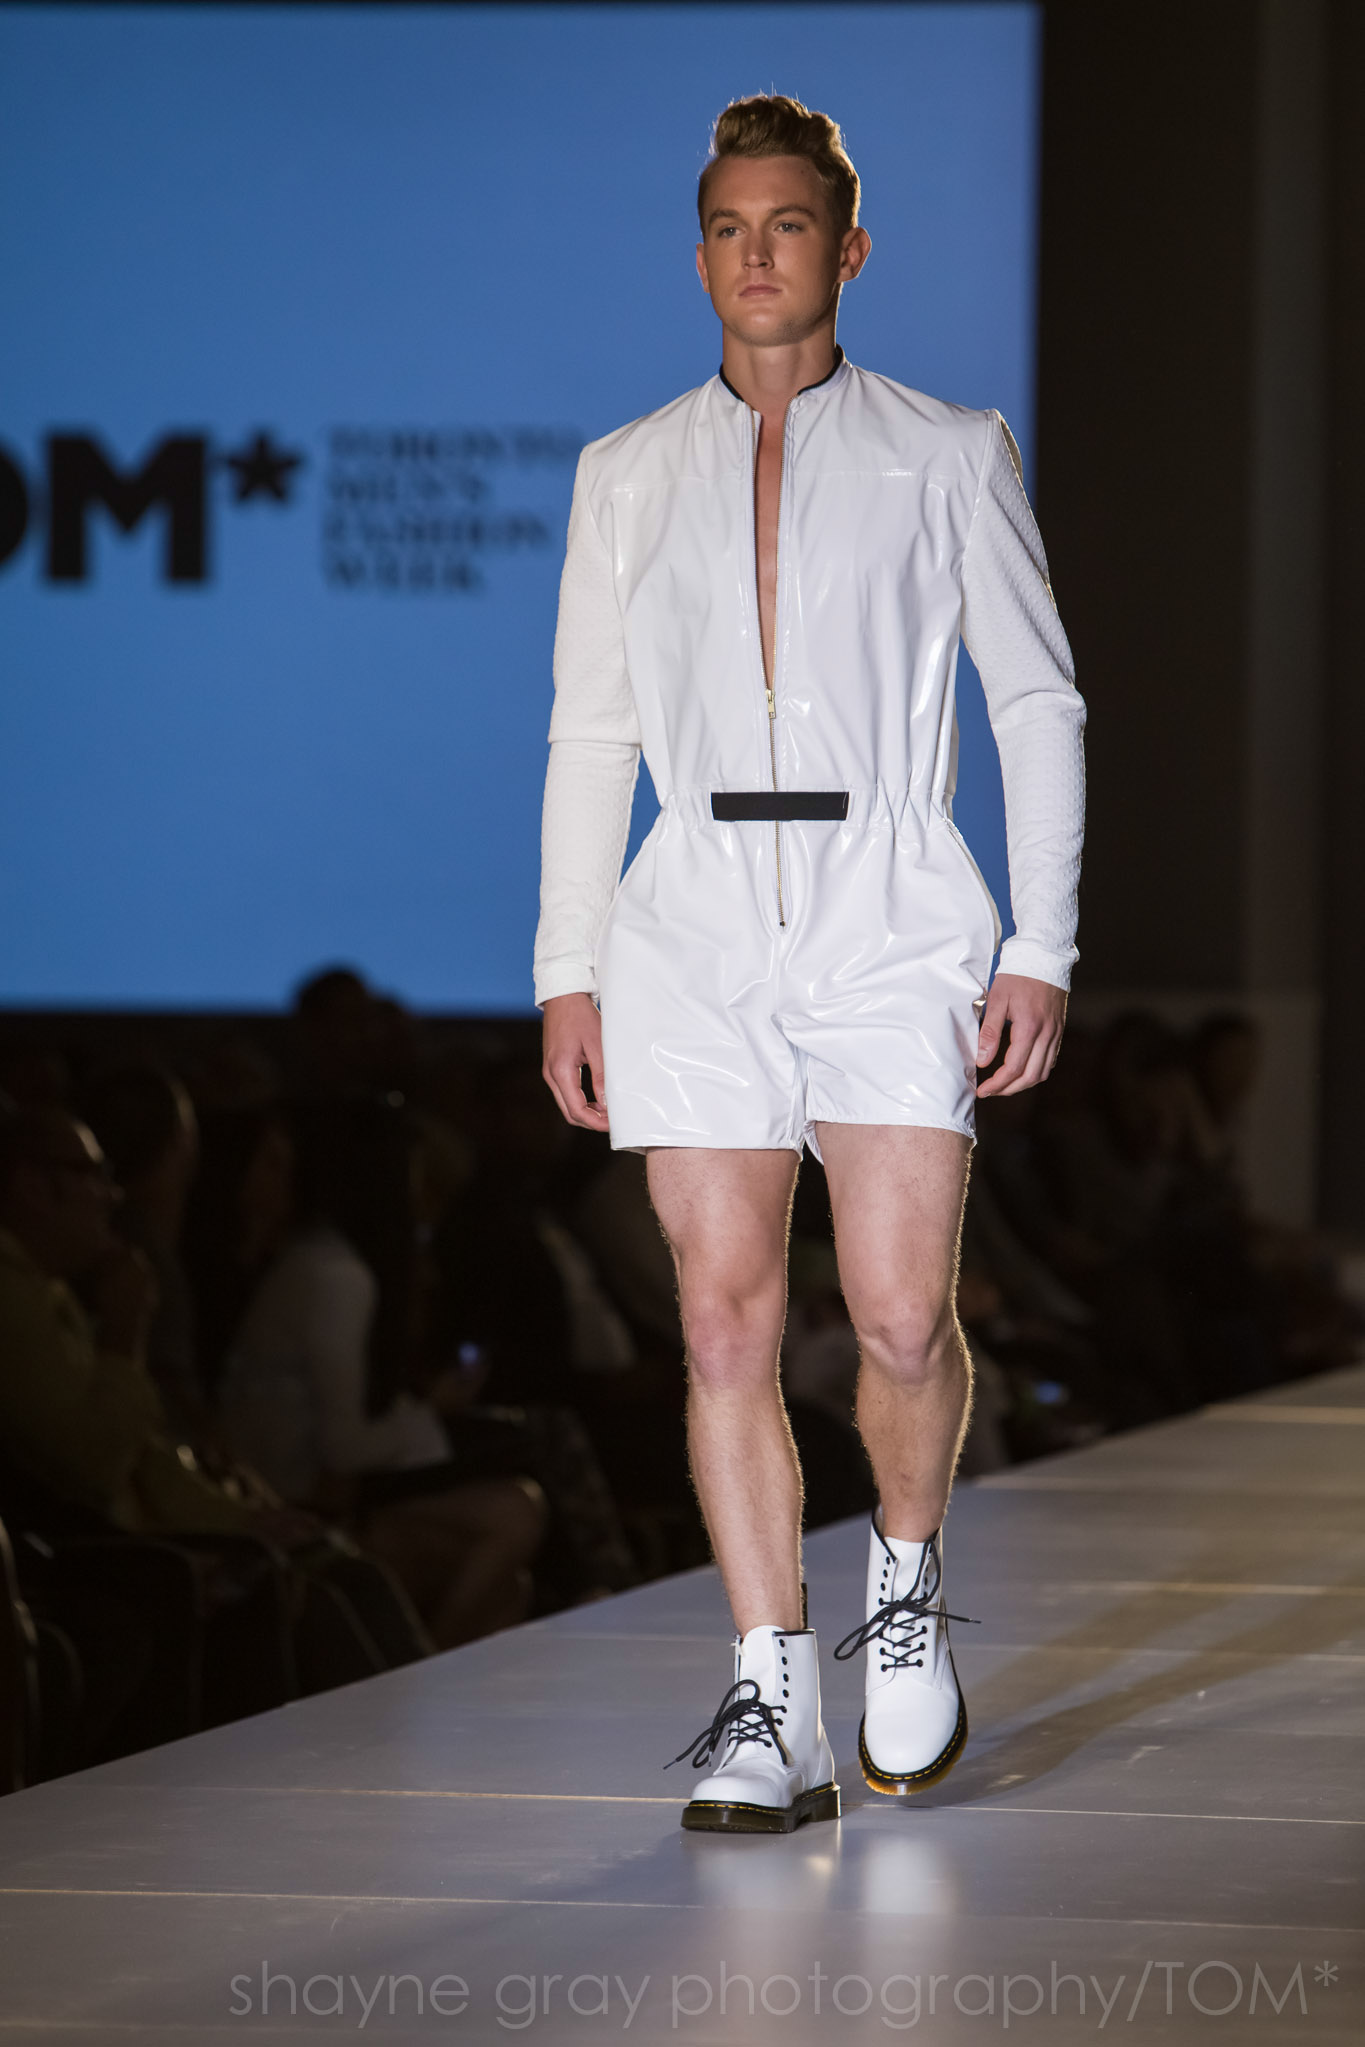 Shayne-Gray-Toronto-men's-fashion_week-TOM-worth-by-david-c-wigley-6236.jpg